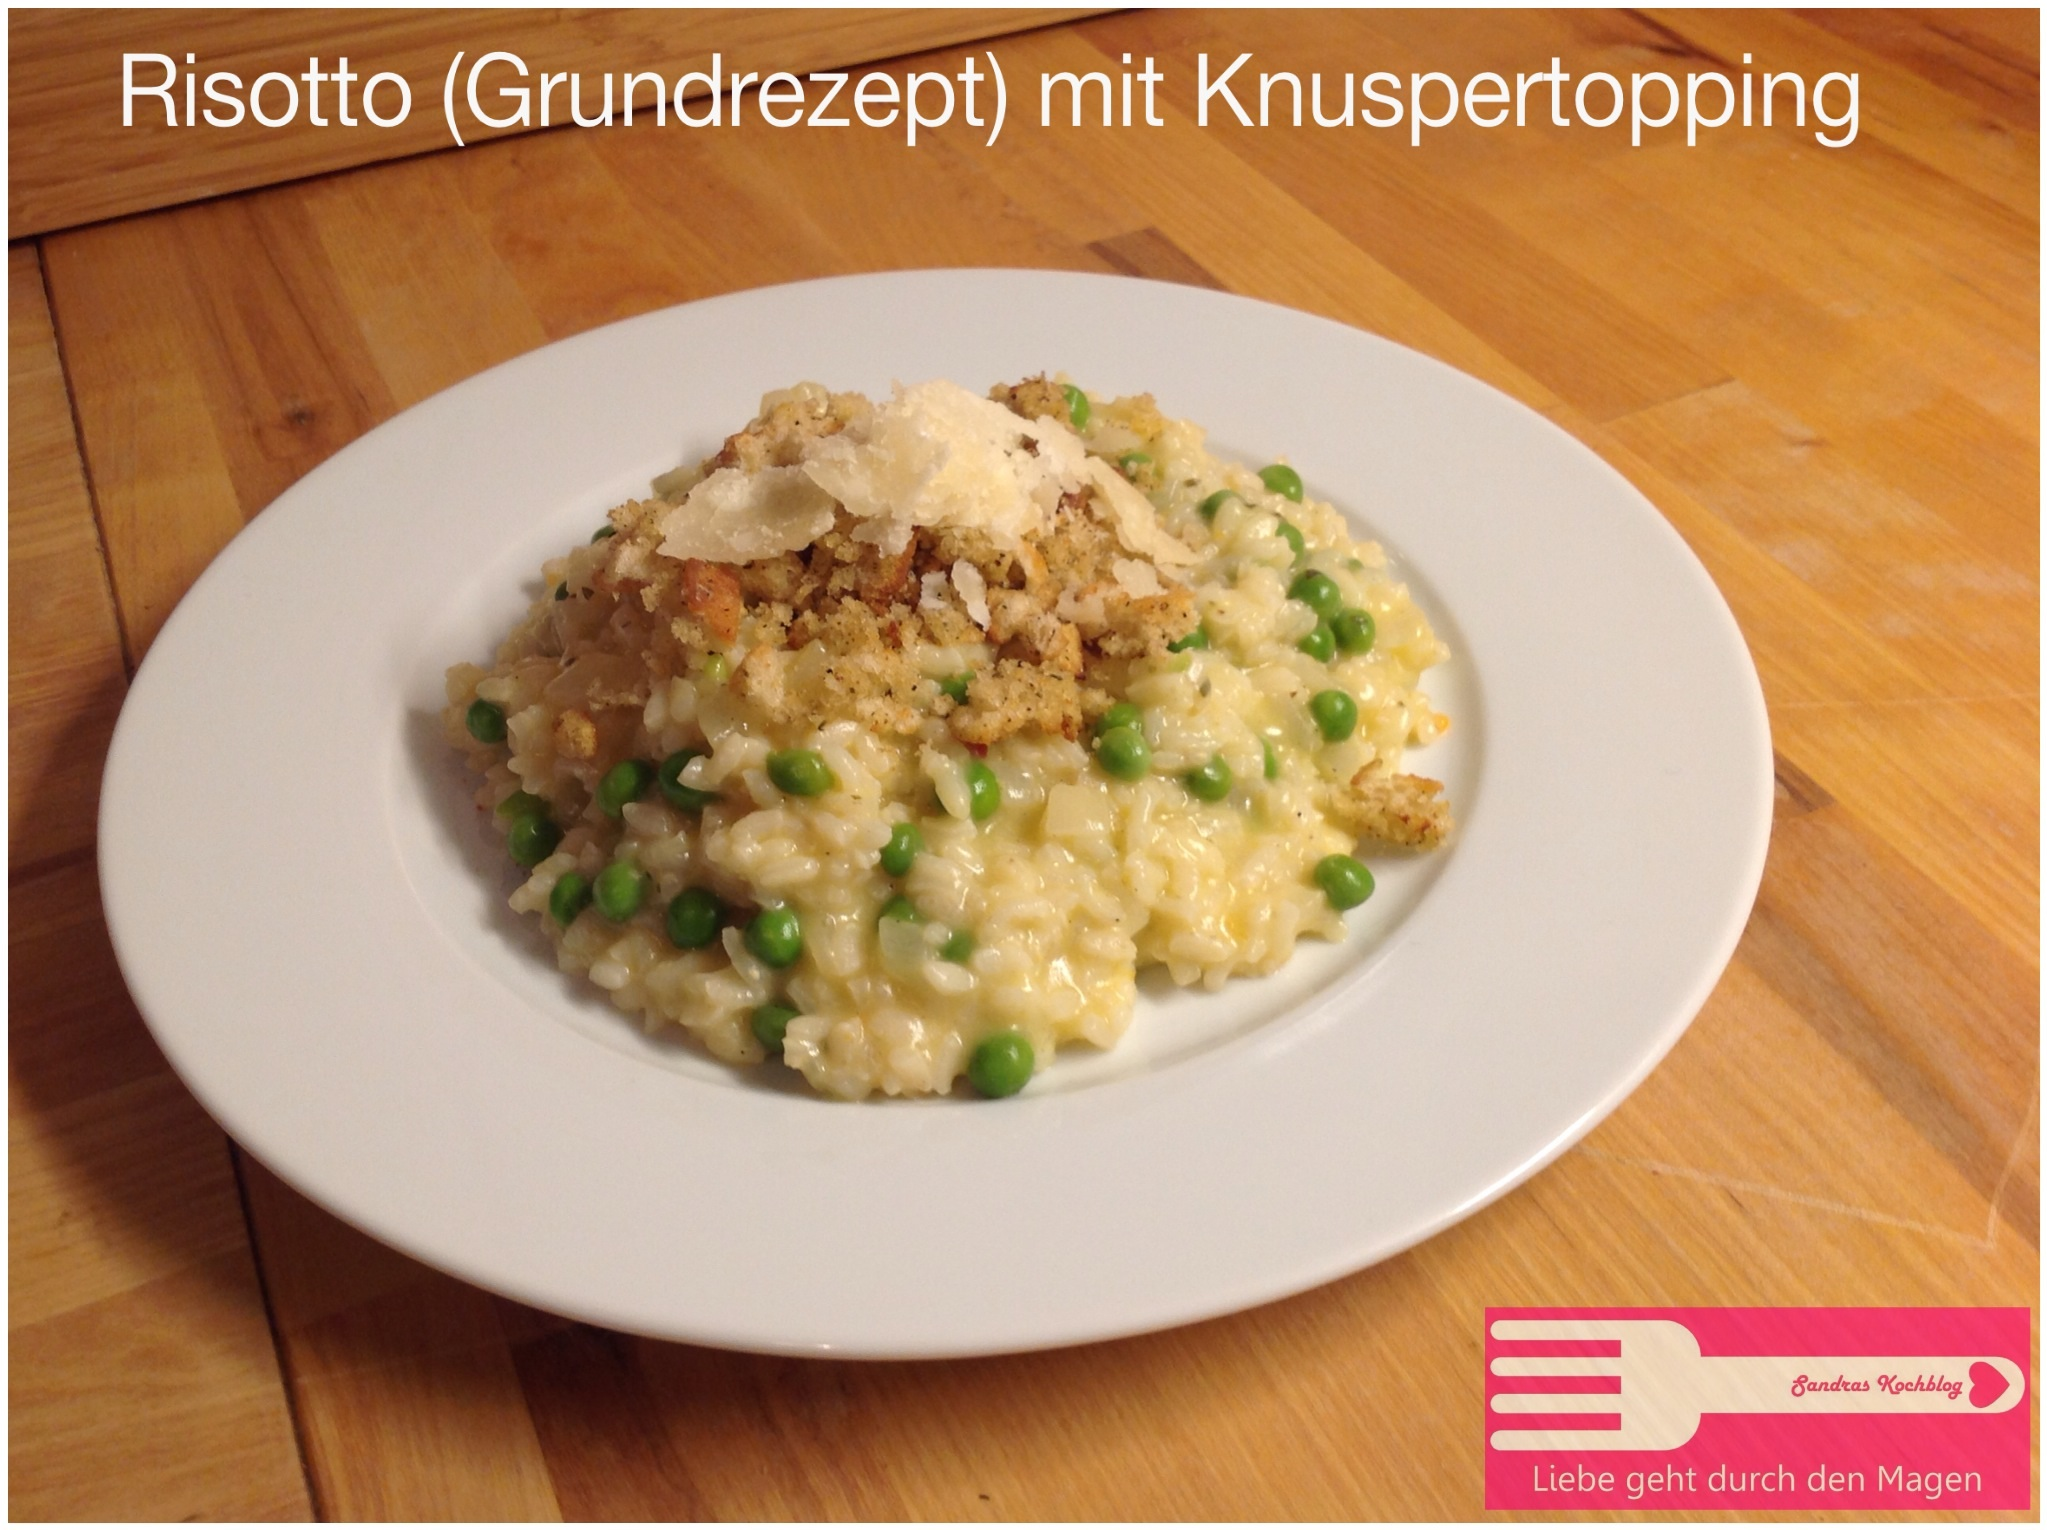 Risotto mit Knupser Topping